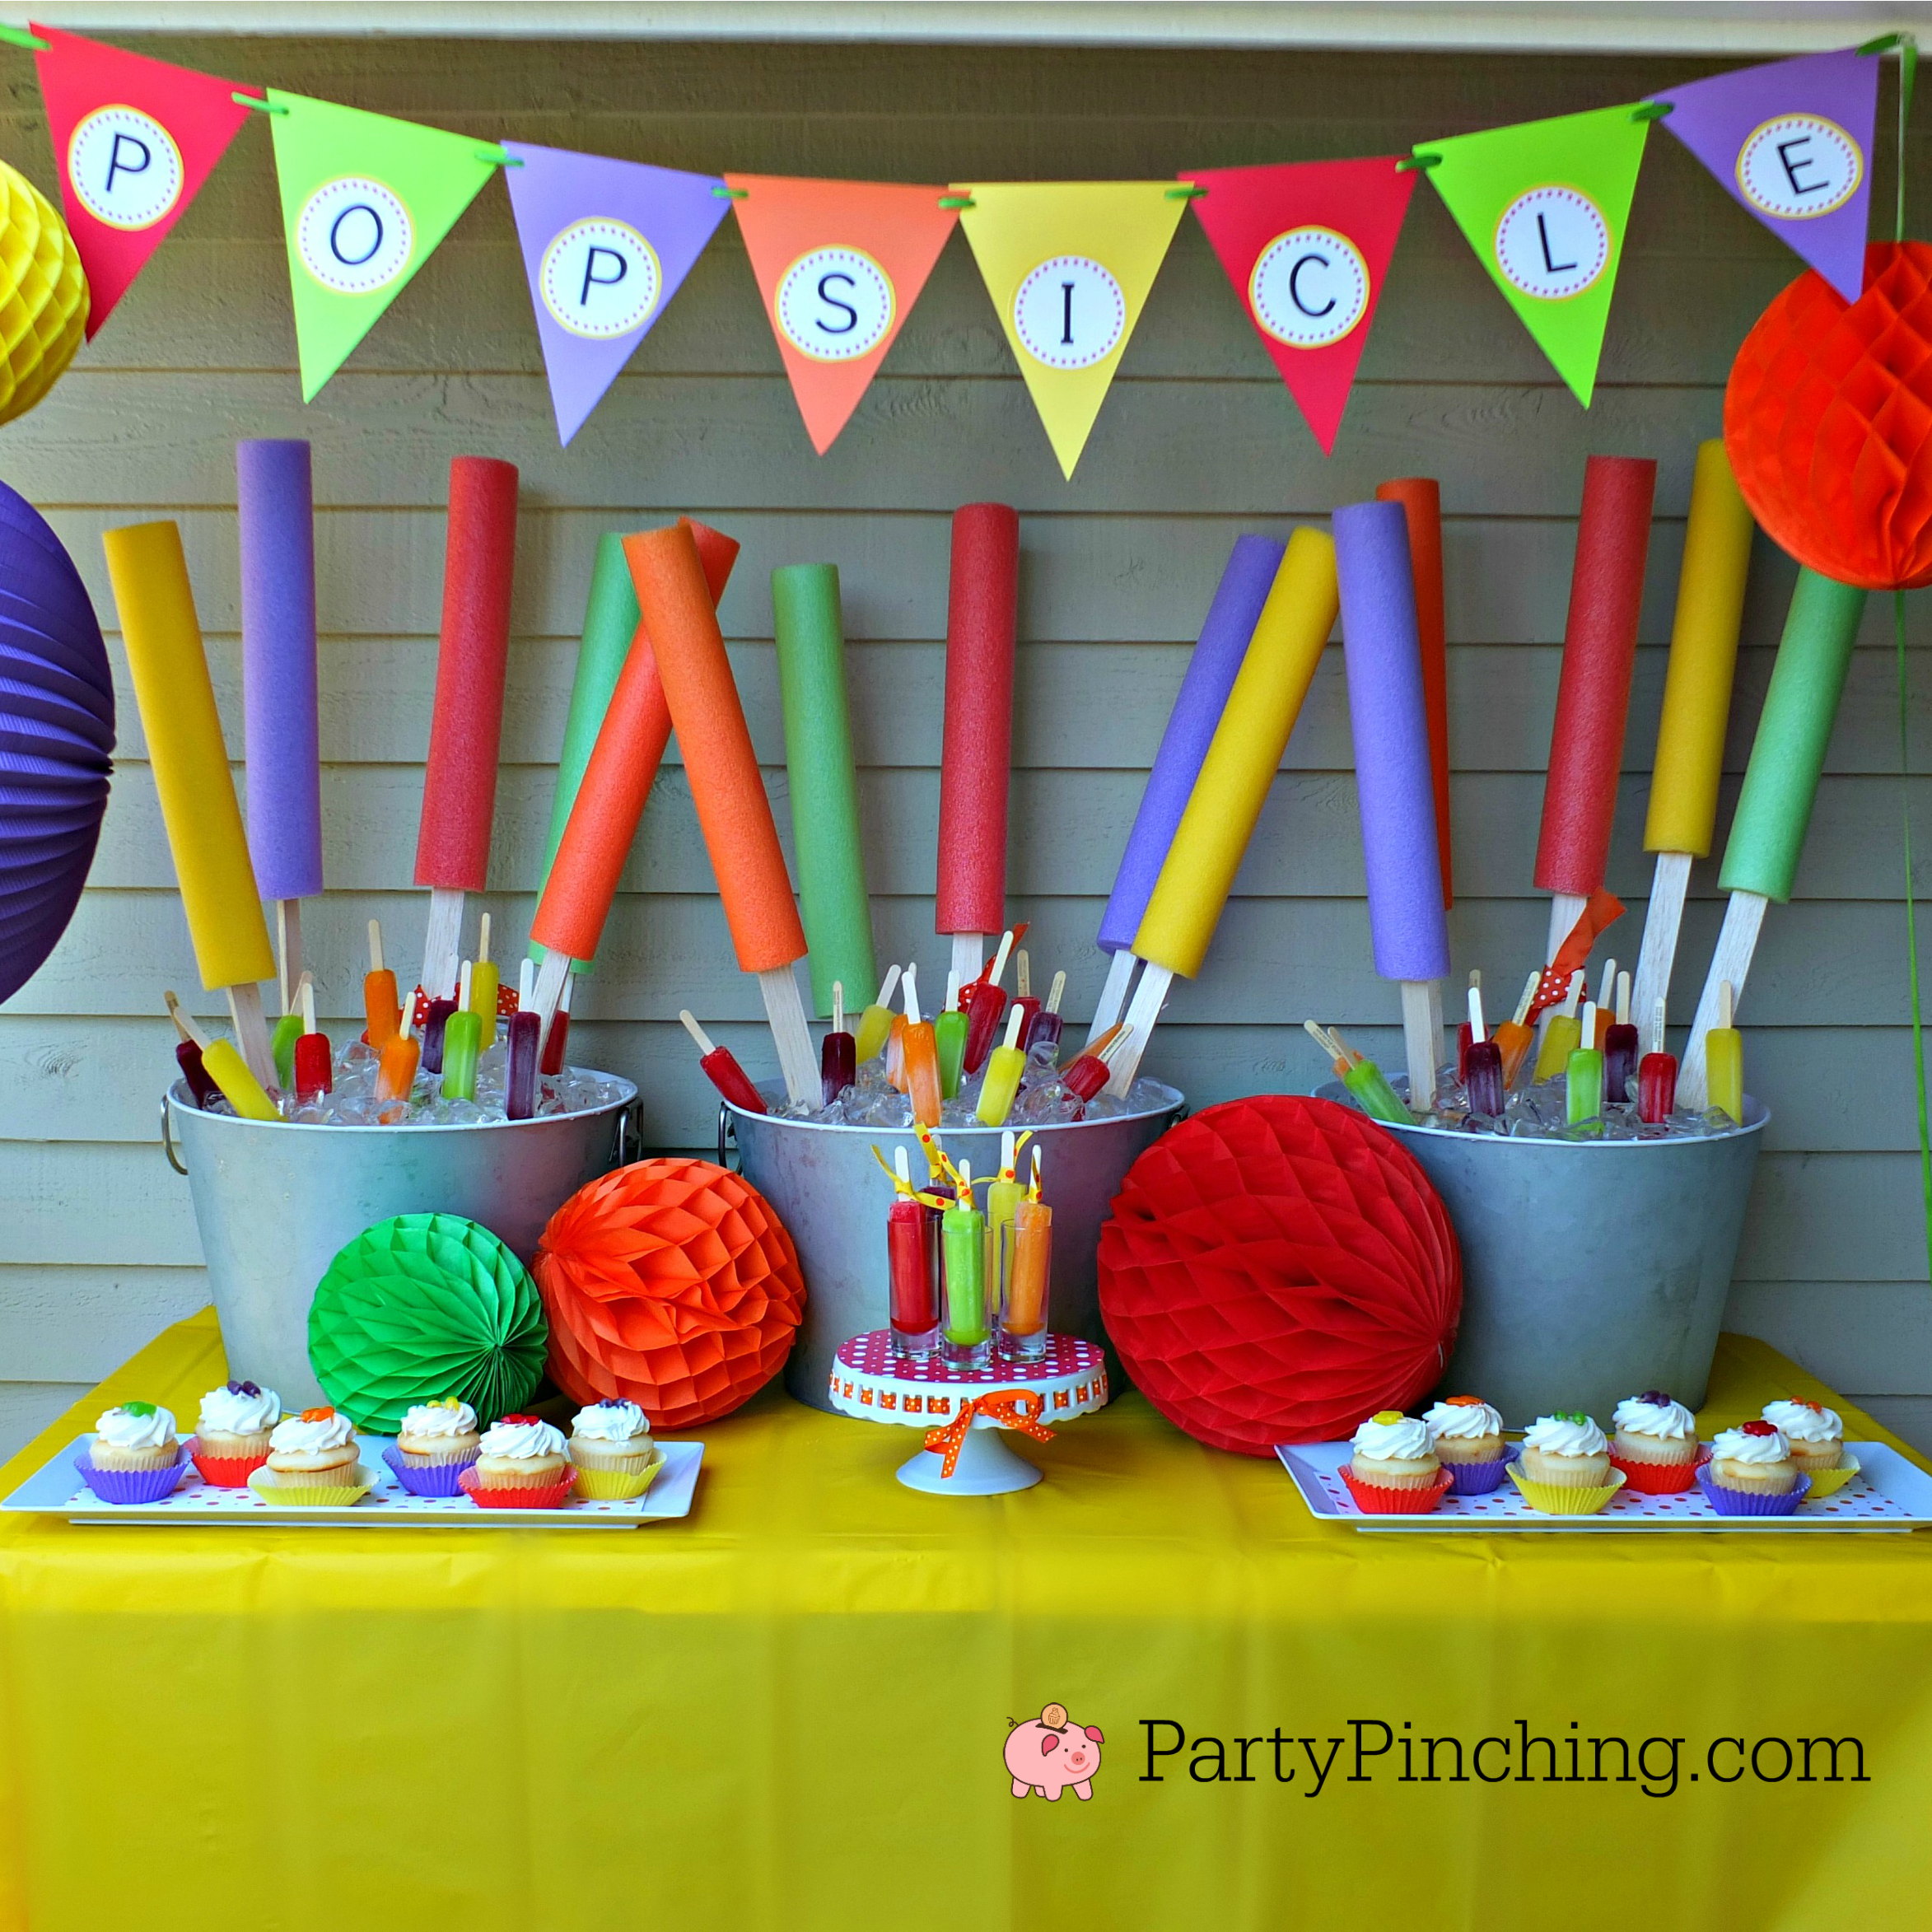 Popsicle Party Summer Party Ideas Popsicle Cupcakes Easy Summer Treats